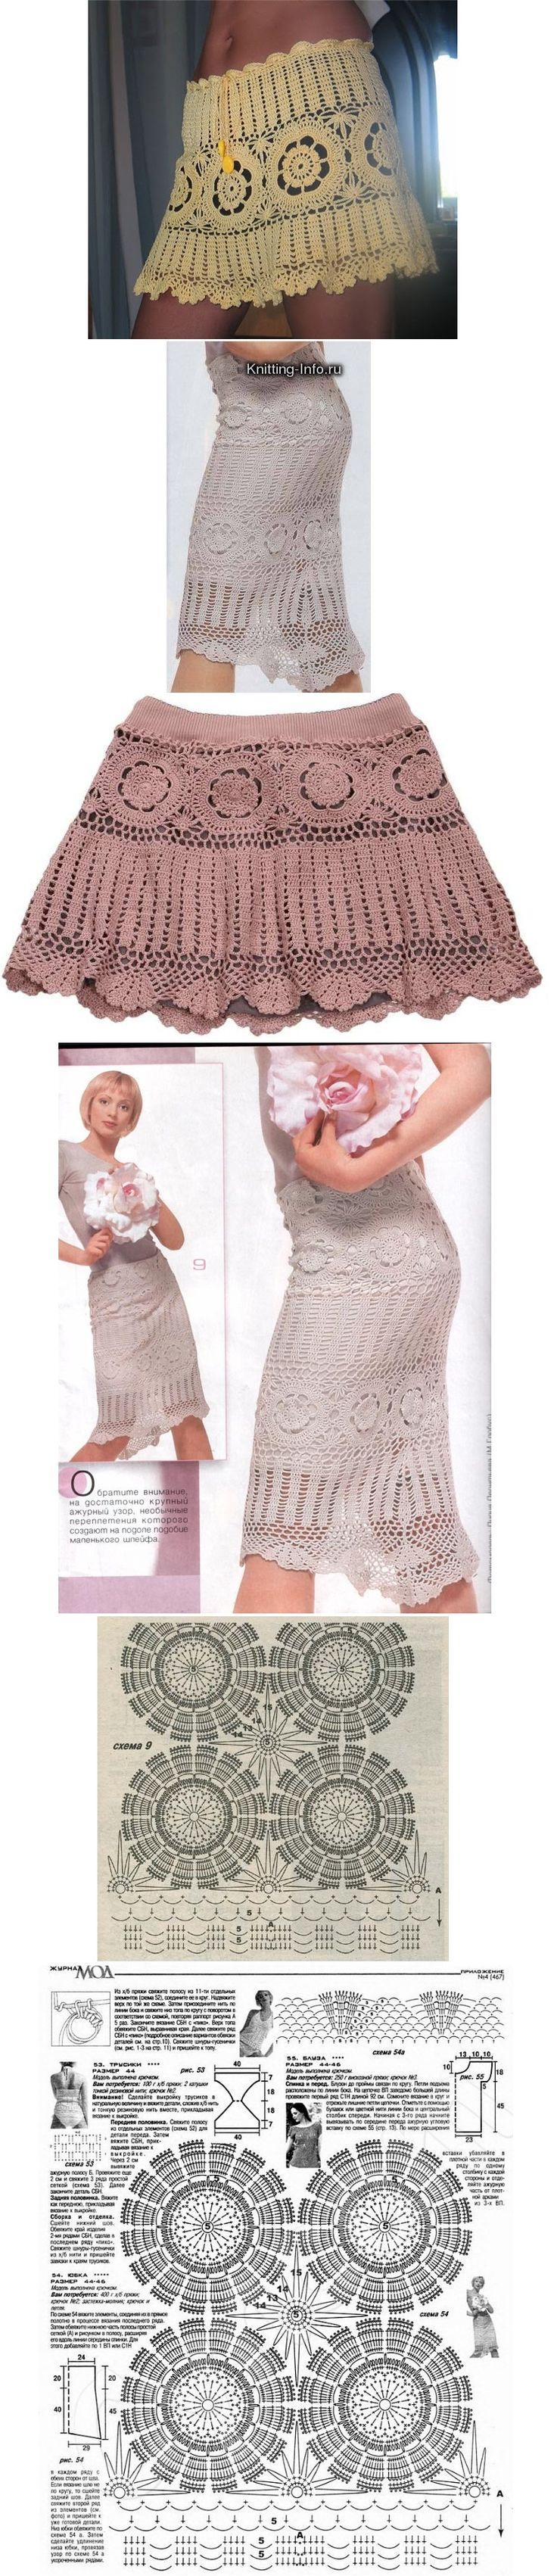 Contemporary Free Crochet Patterns For Dresses And Skirts Vignette ...